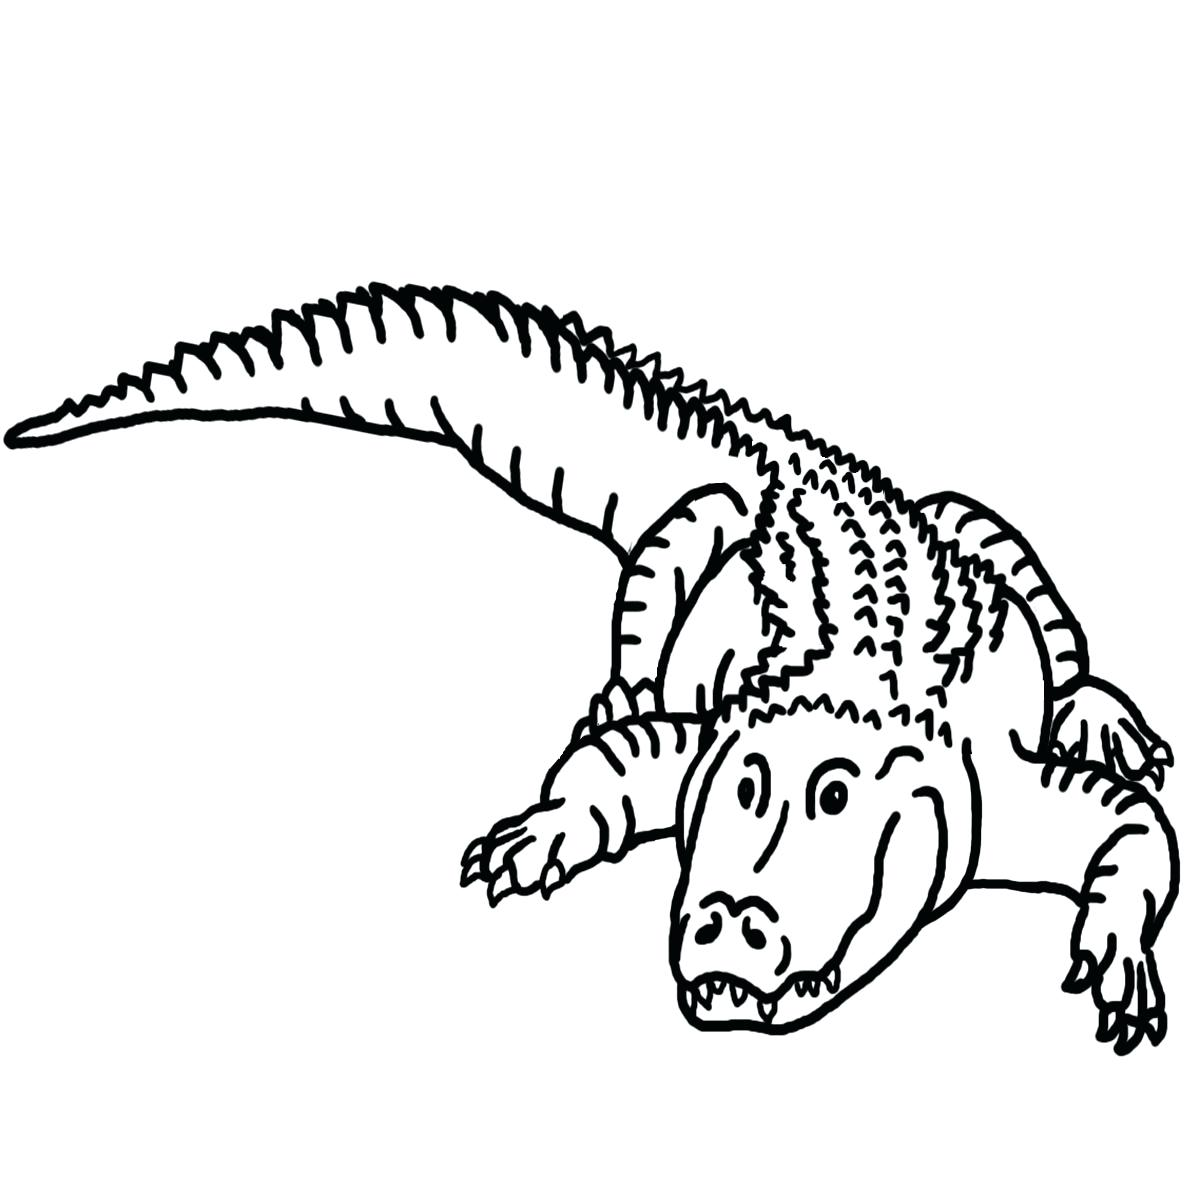 1200x1200 Coloring Reptiles Coloring Pages Drawn Reptile Line Drawing 5